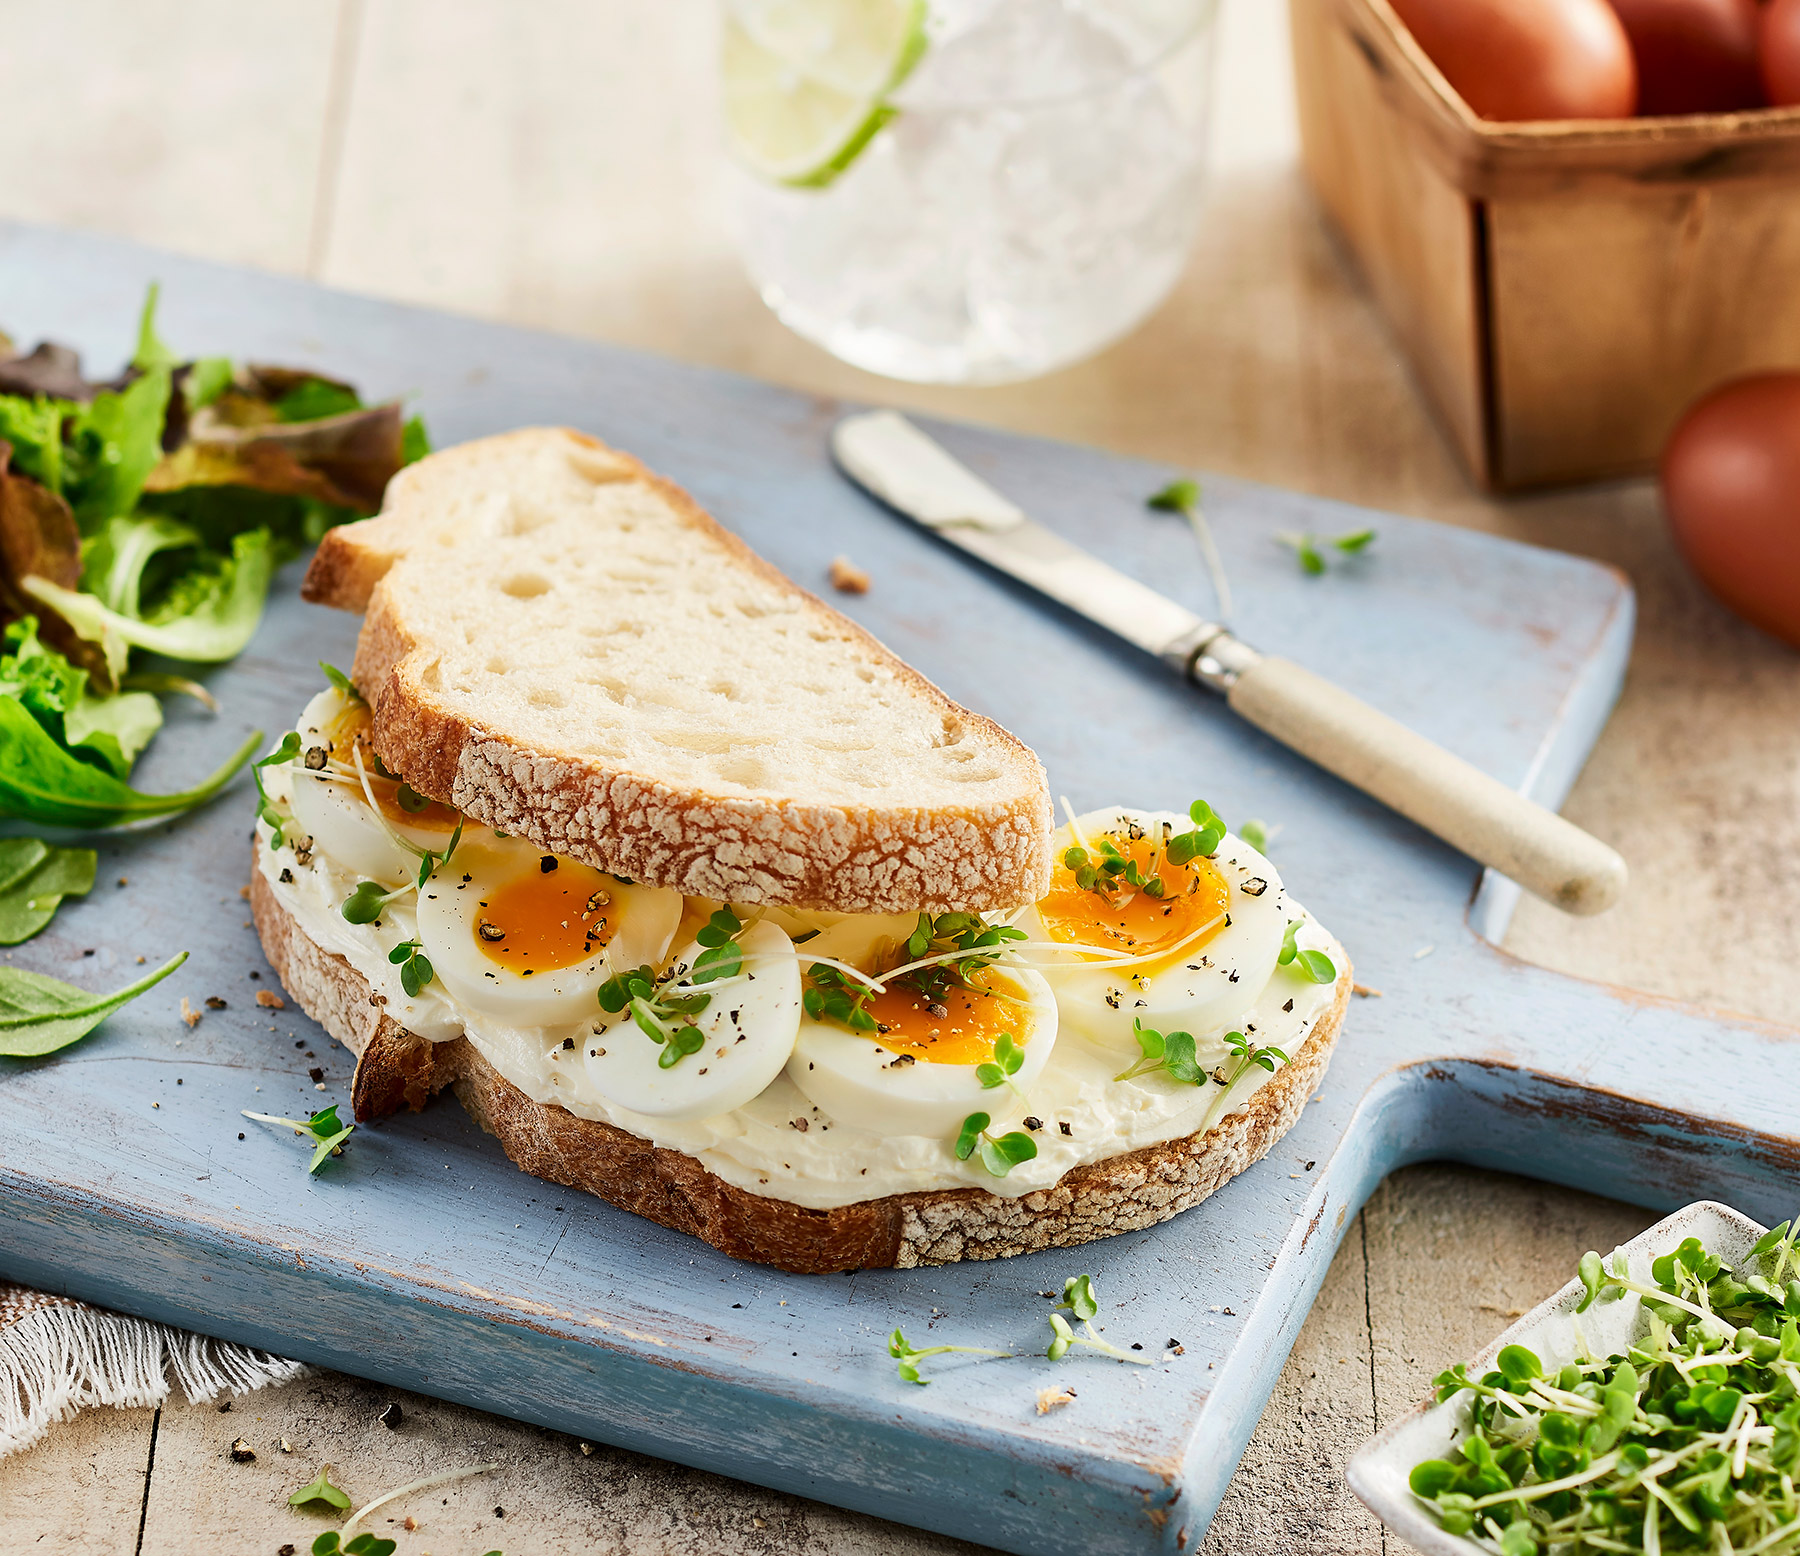 Philadelphia, egg and cress sourdough sandwich